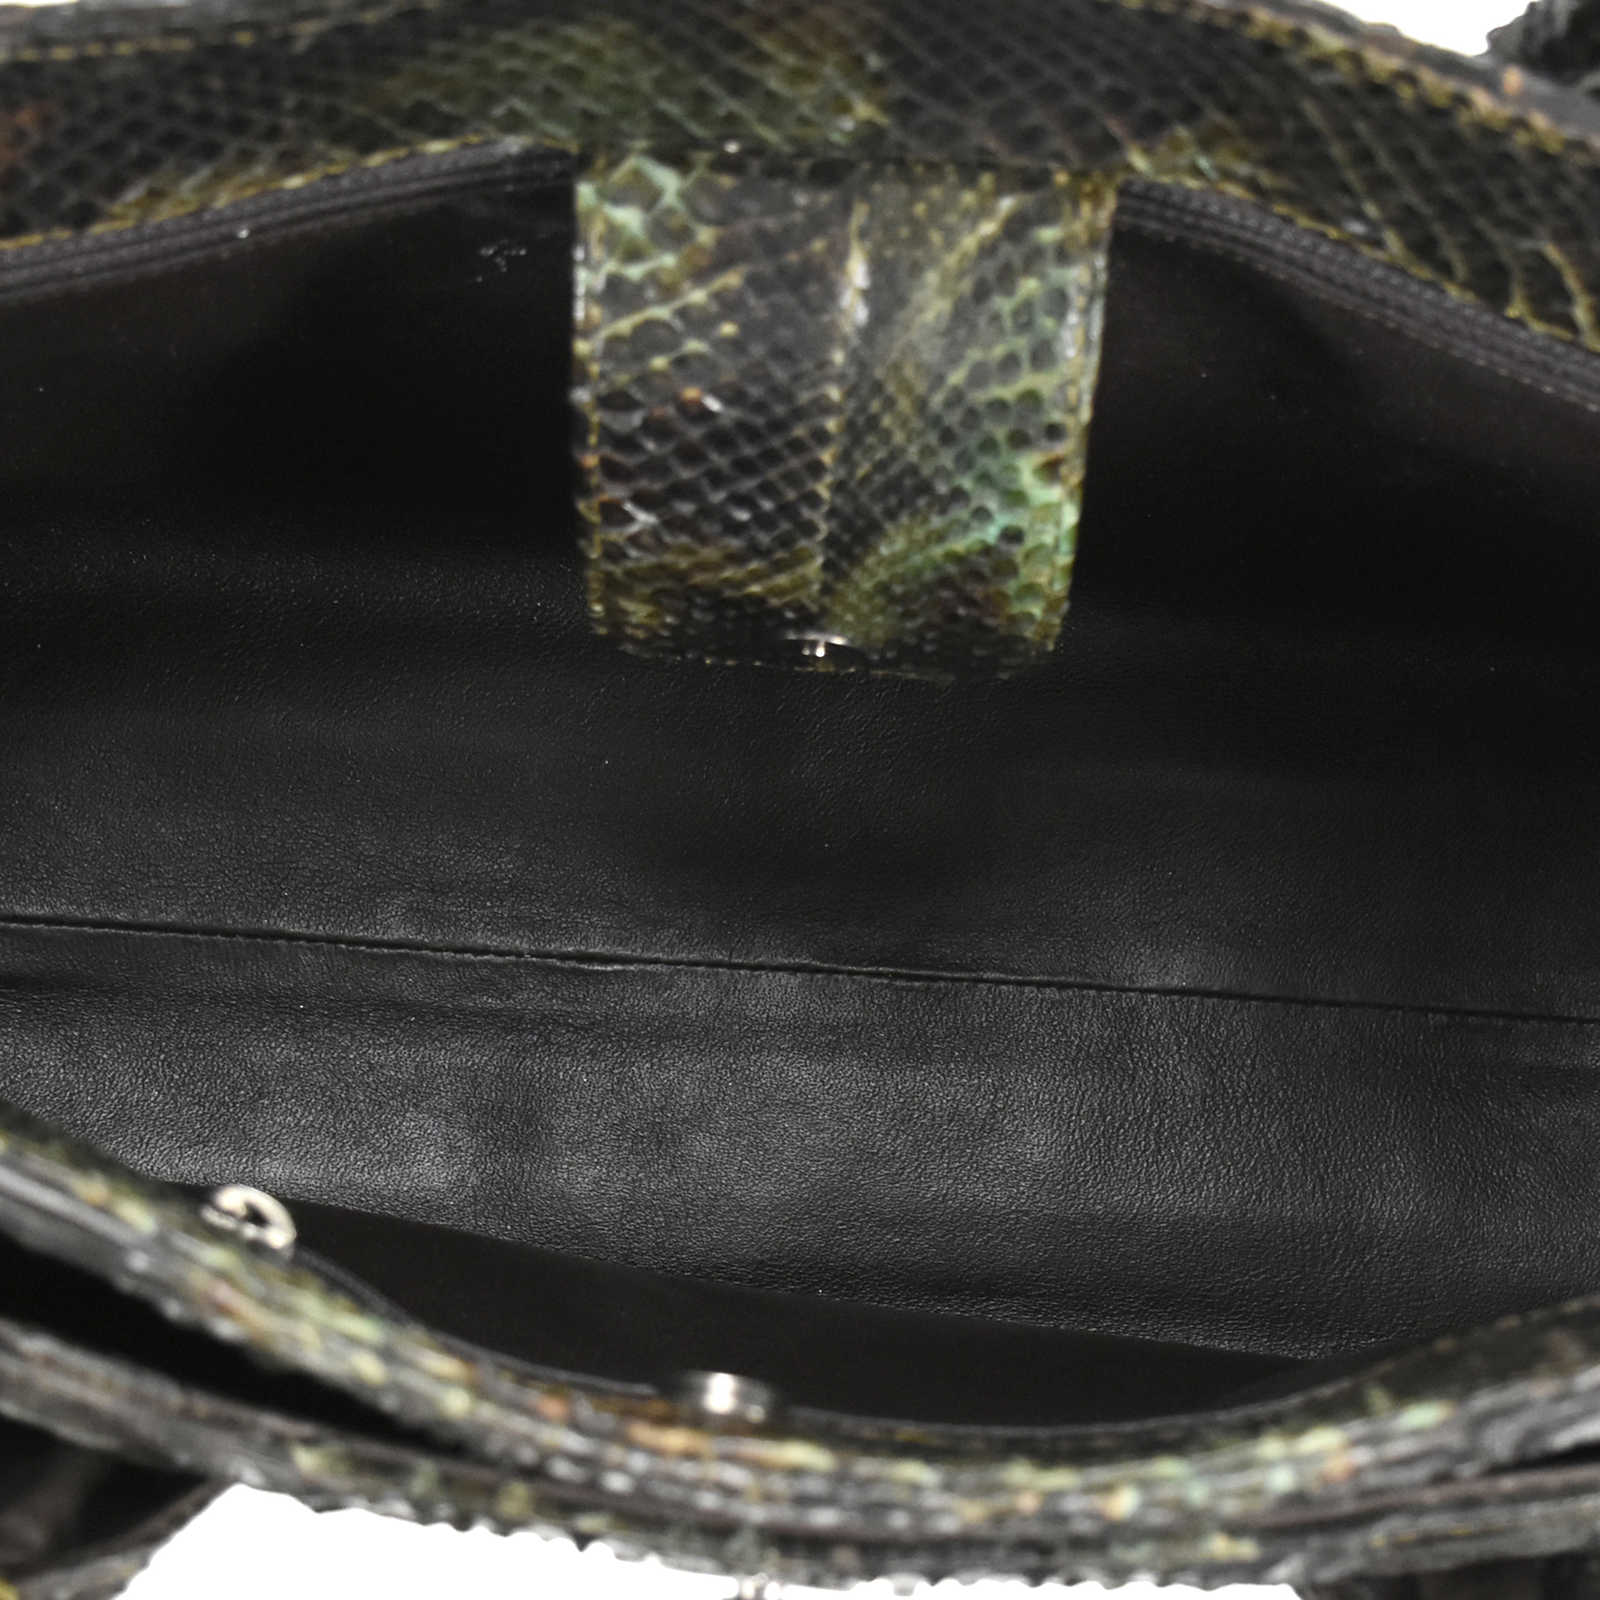 00c4f191f2b1 ... Authentic Second Hand Chanel Python Cerf Tote (PSS-200-00903) -  Thumbnail ...